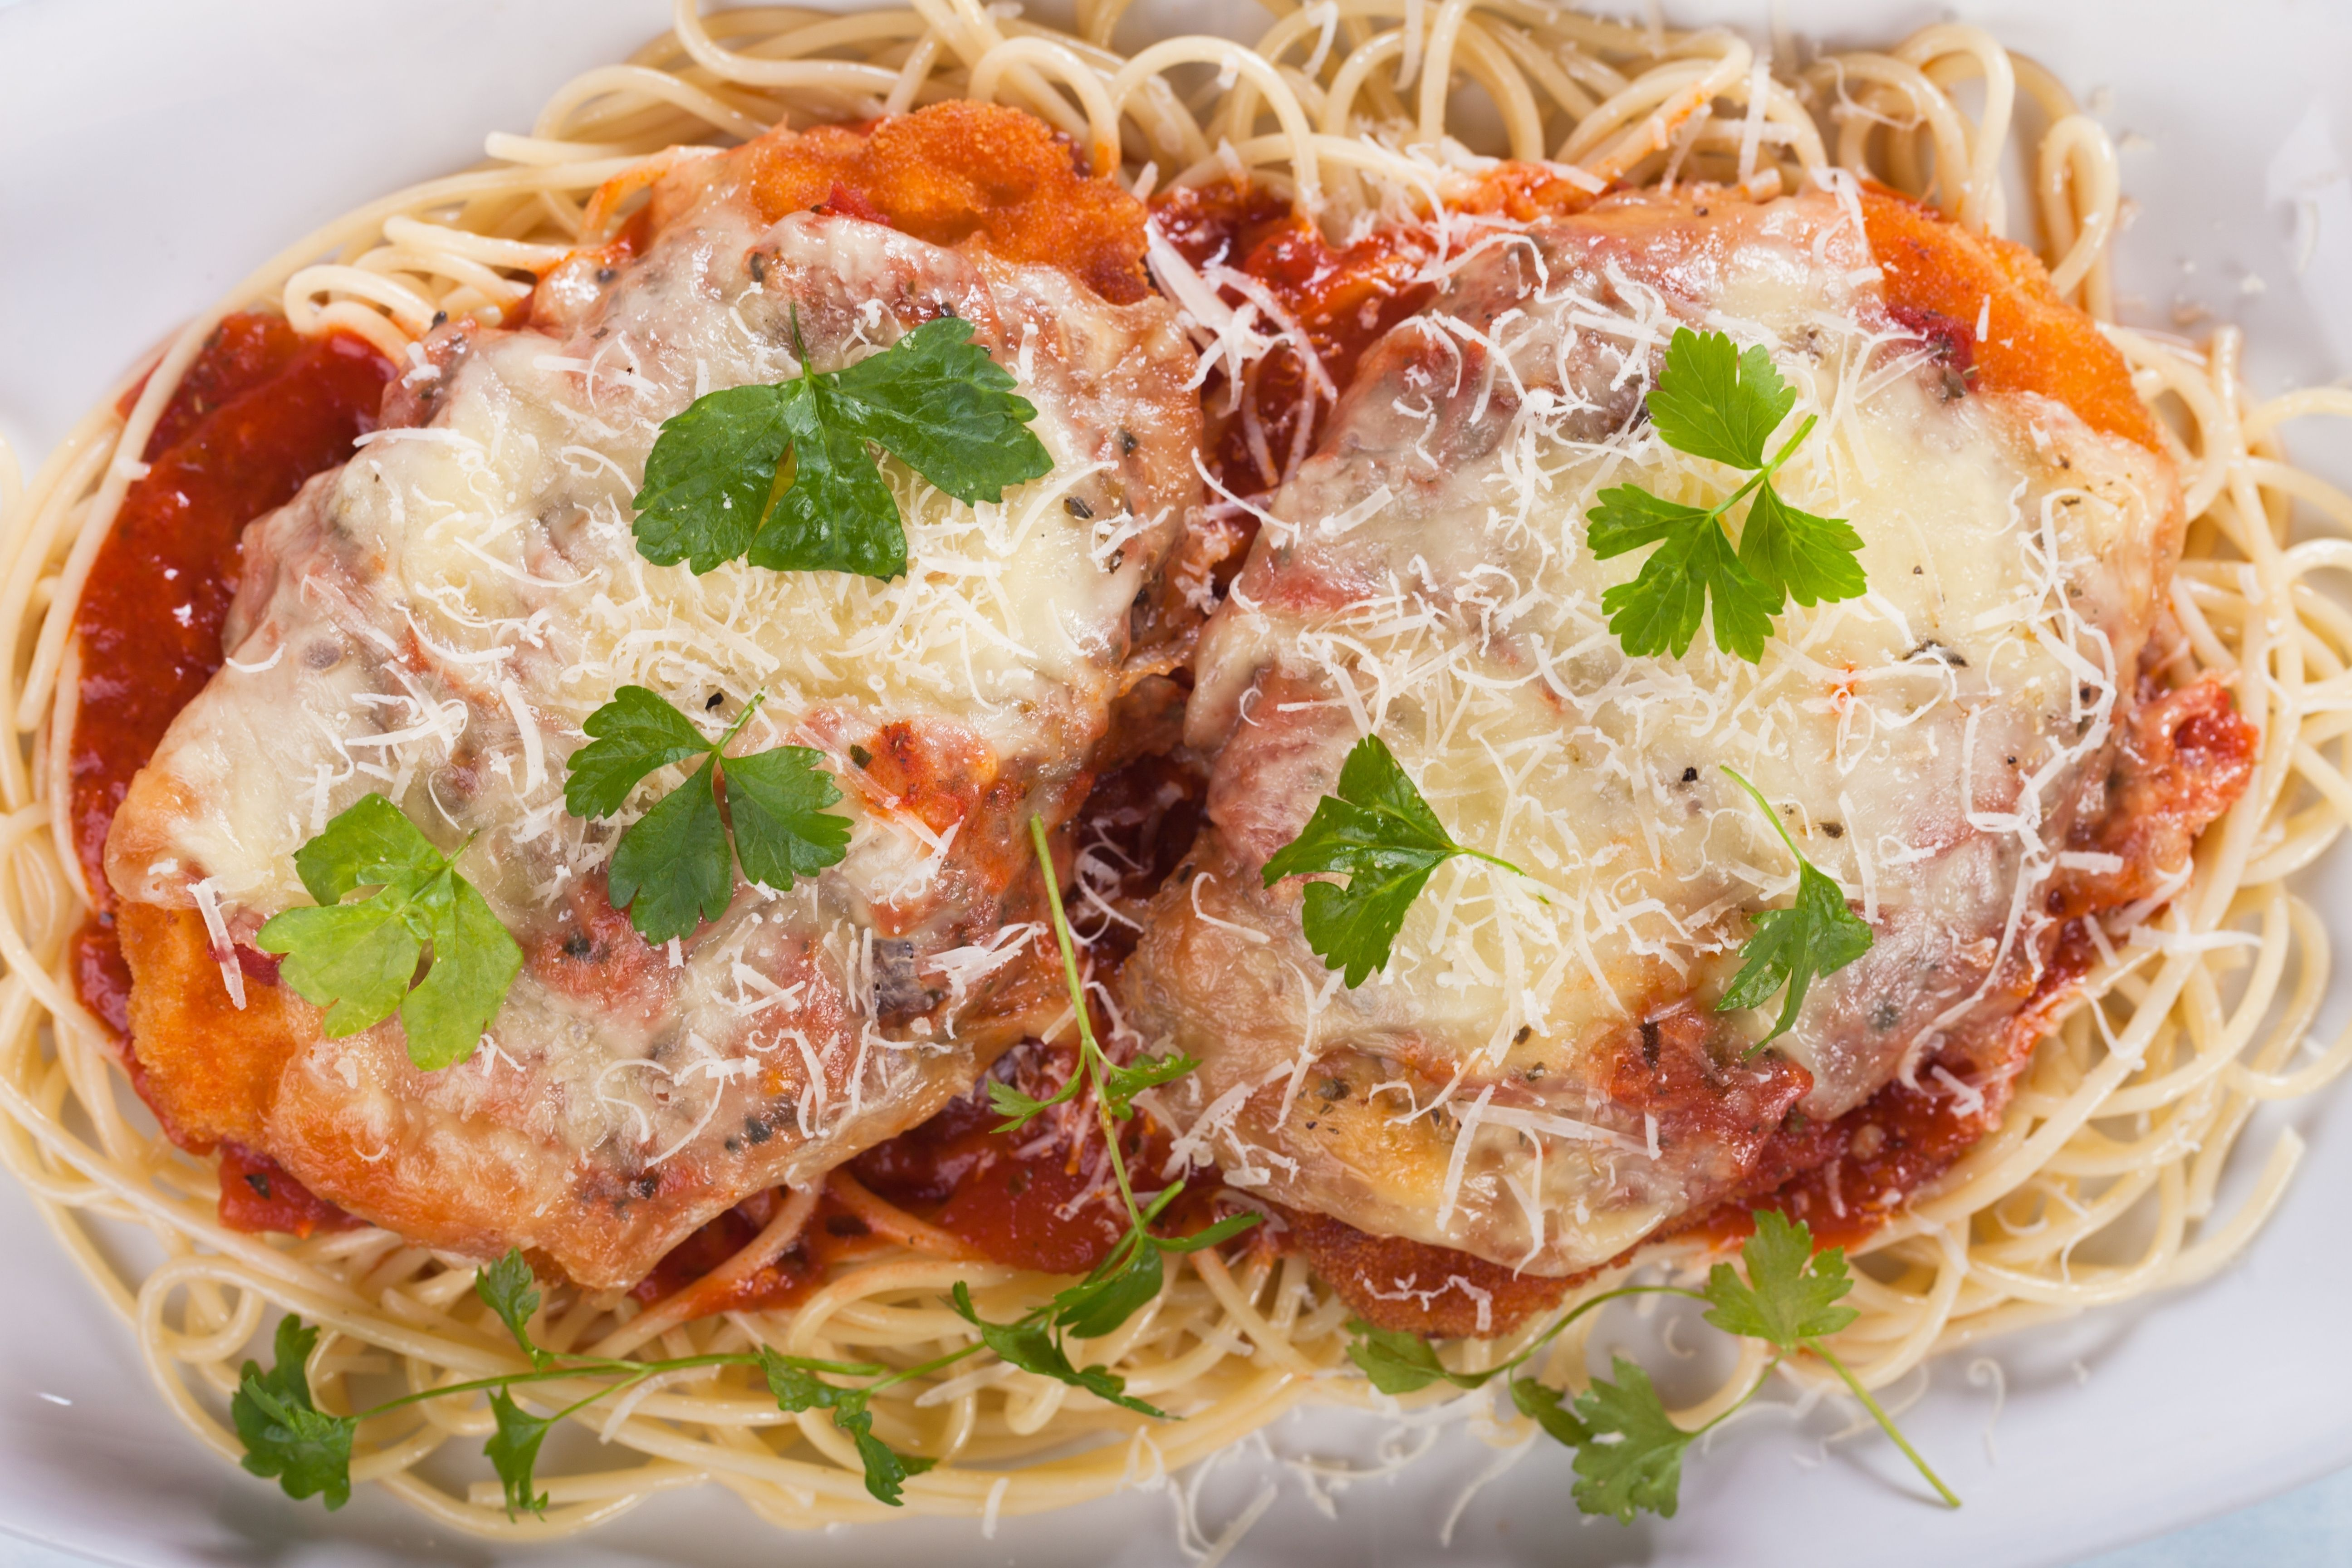 How To Reheat Chicken Parm In An Air Fryer